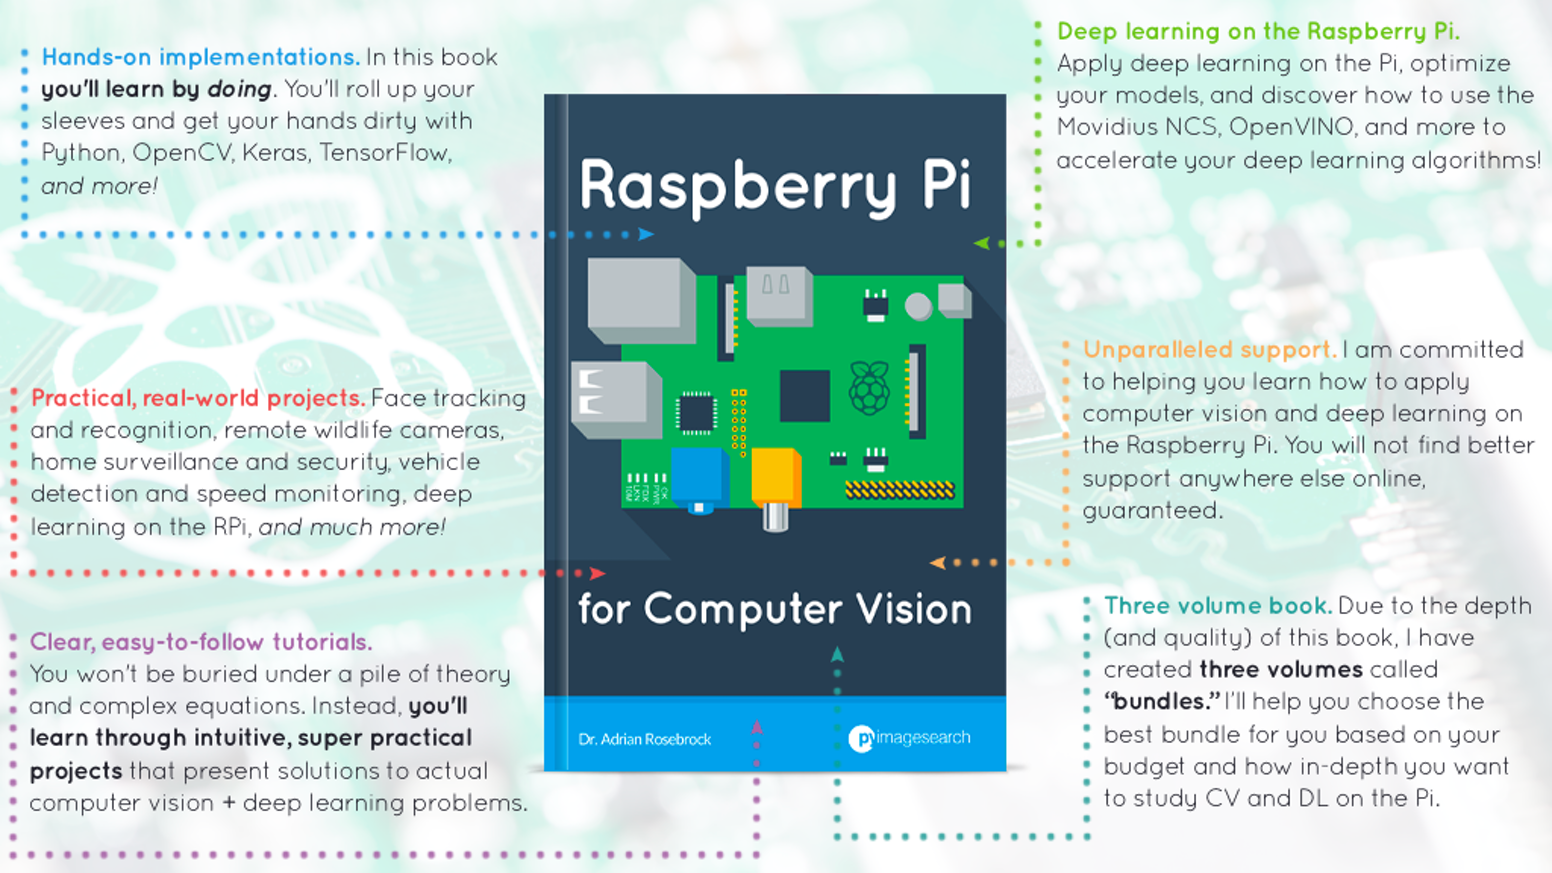 "You can teach your Raspberry Pi to ""see"" — using Computer Vision, Deep Learning, and OpenCV. I'll show you how, inside this book."